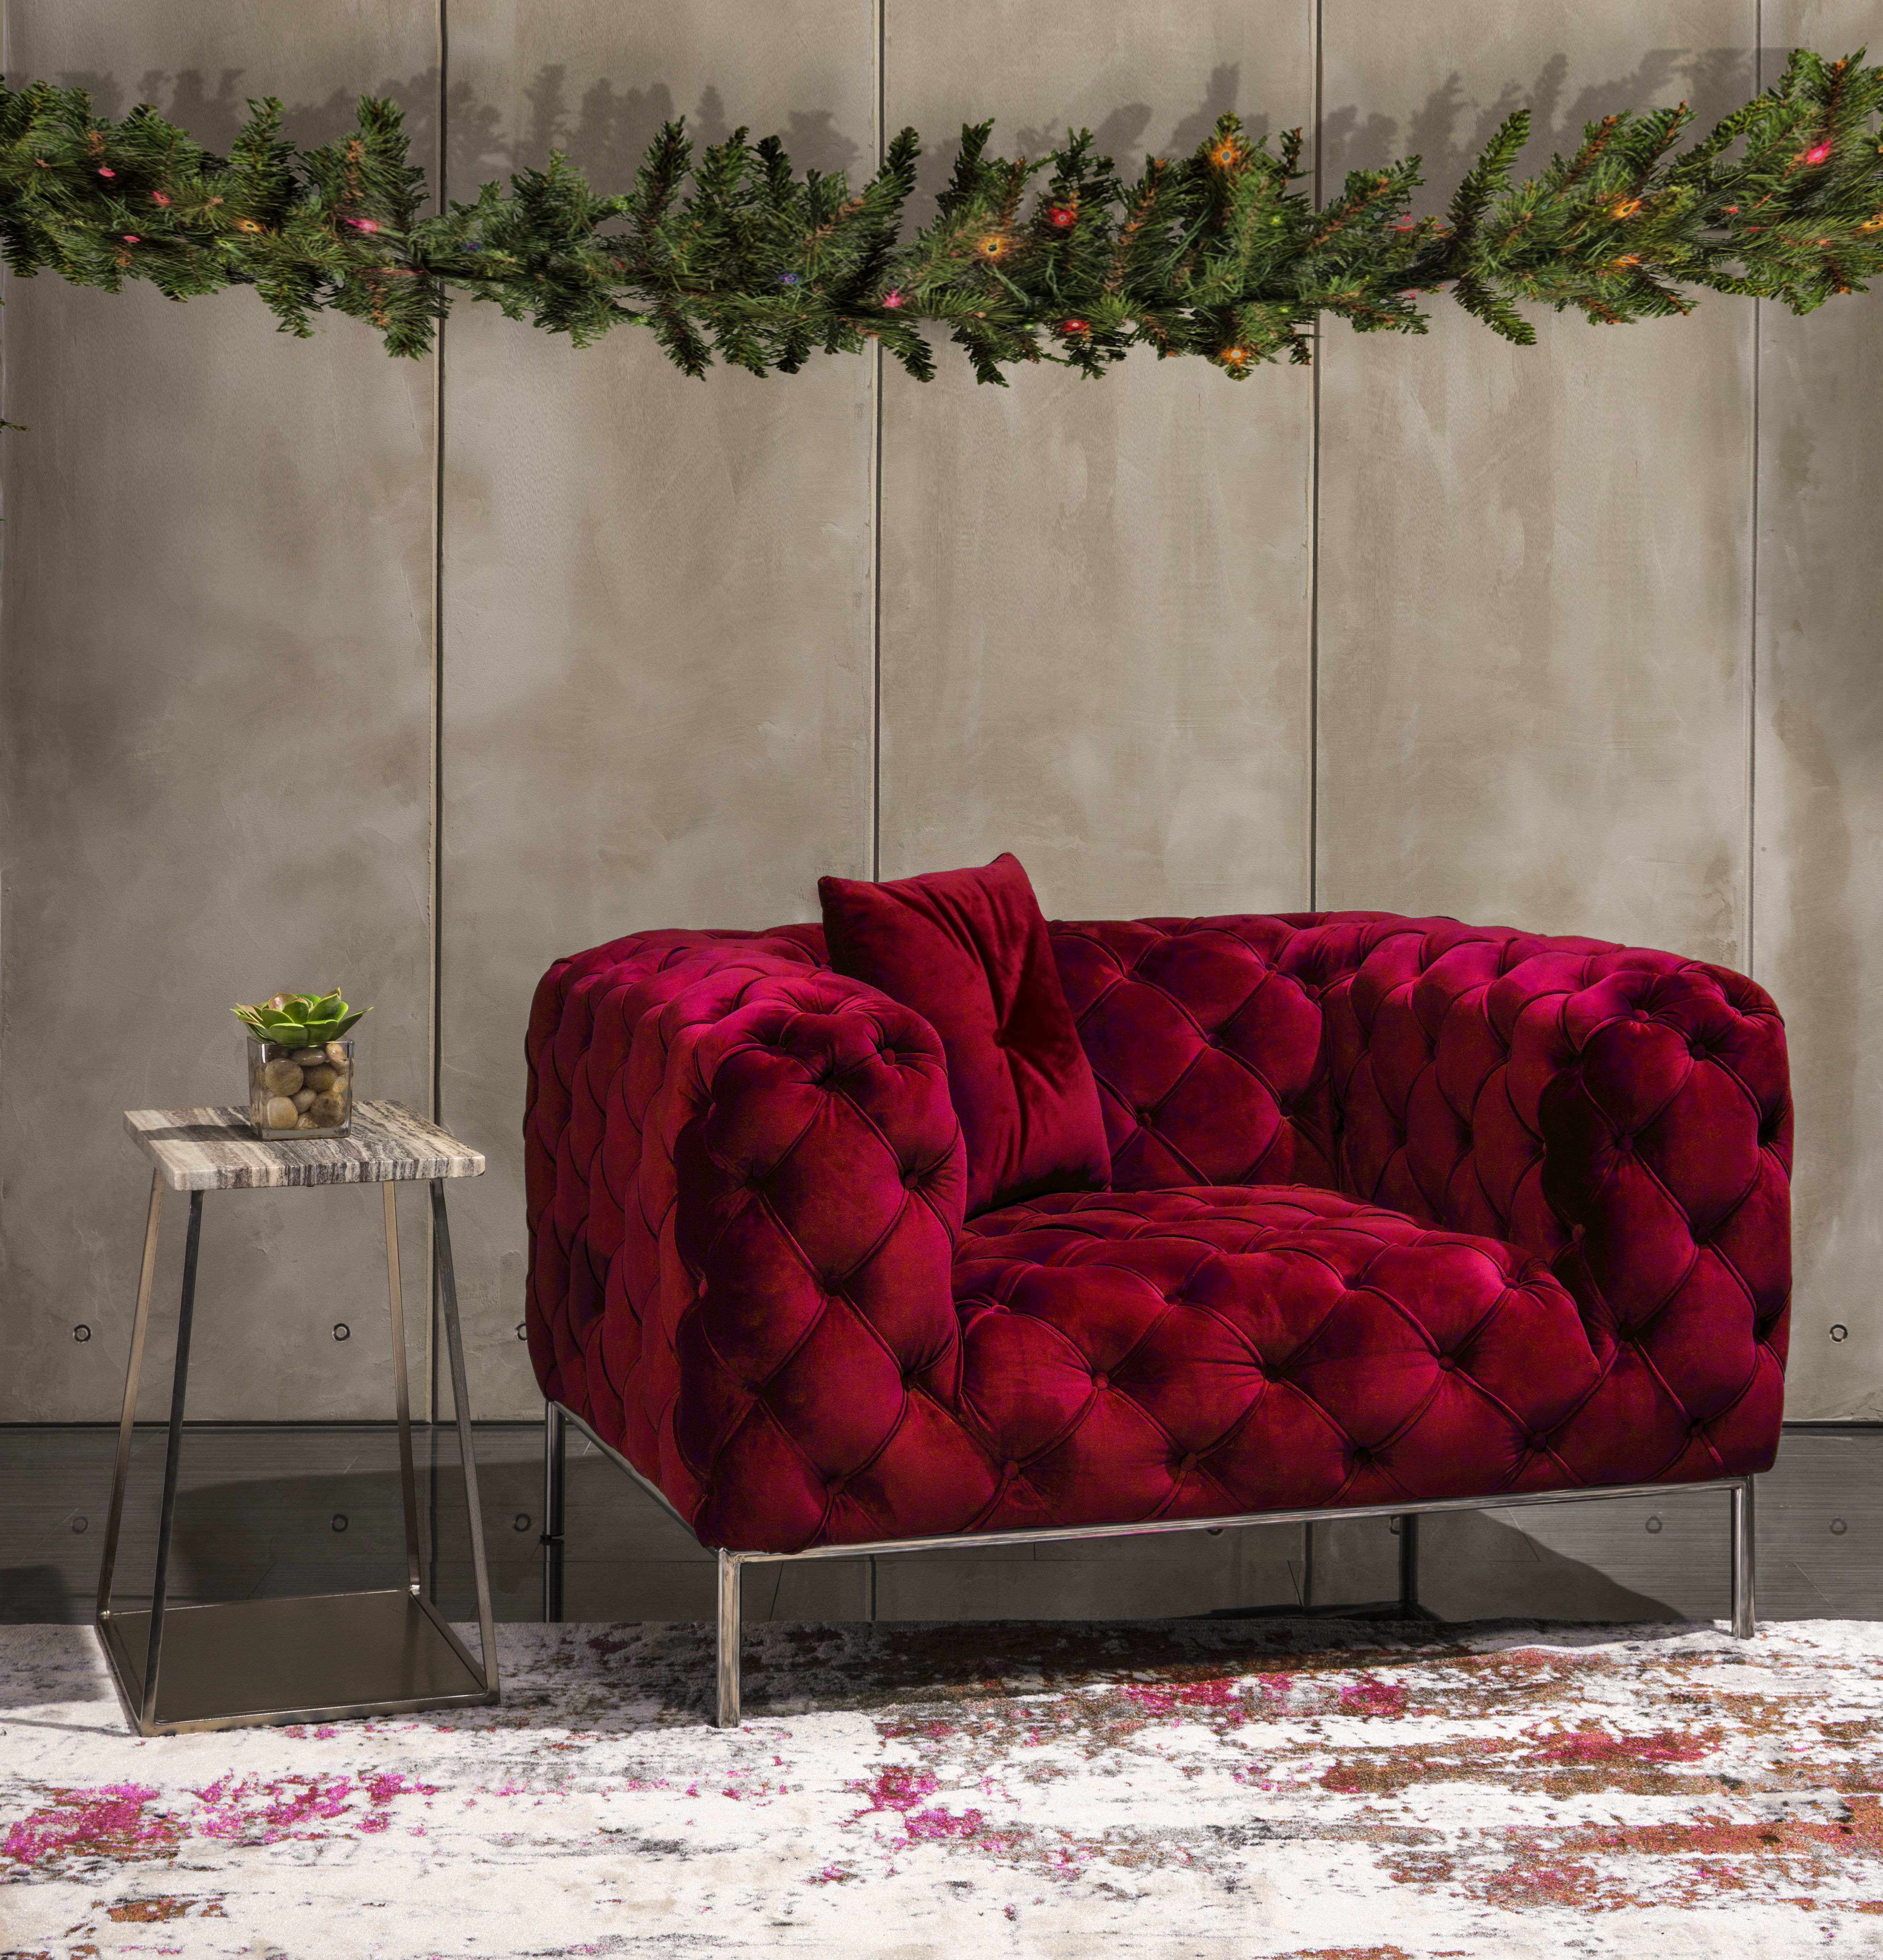 Crandon Red Chair Half Red Chair Chair Accent Furniture #red #living #room #accent #chairs